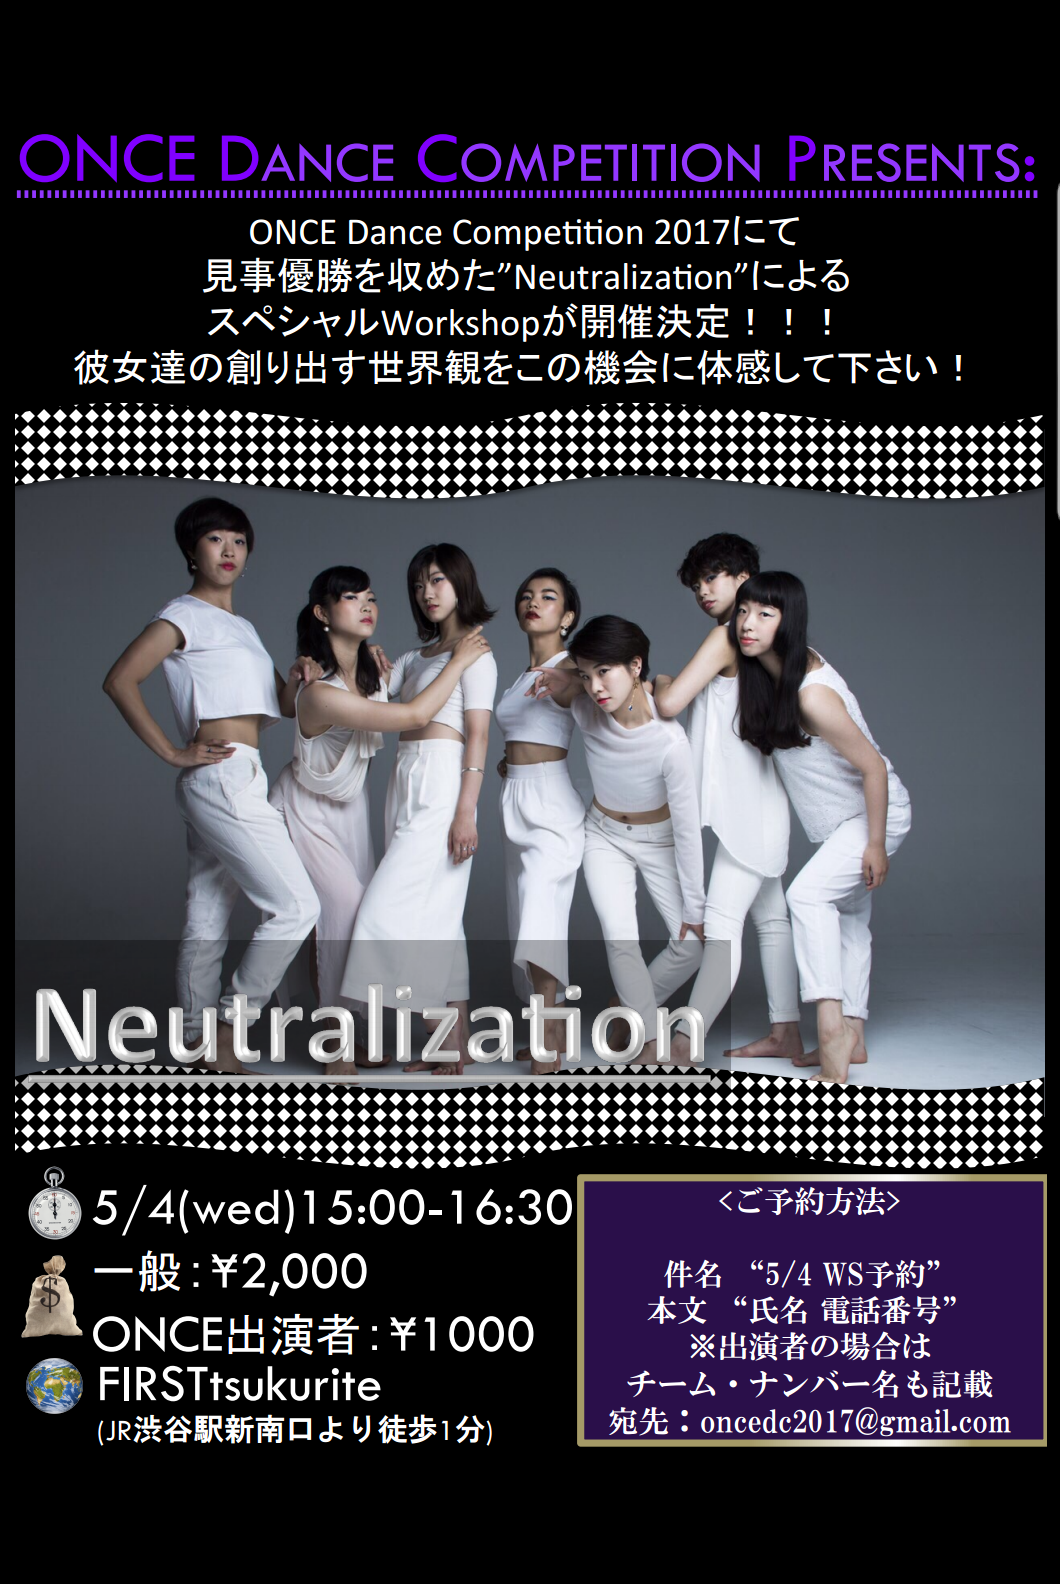 ONCE DANCE COMPETITION PRESENTS Special Workshop 髢句ぎ�シ�シ�